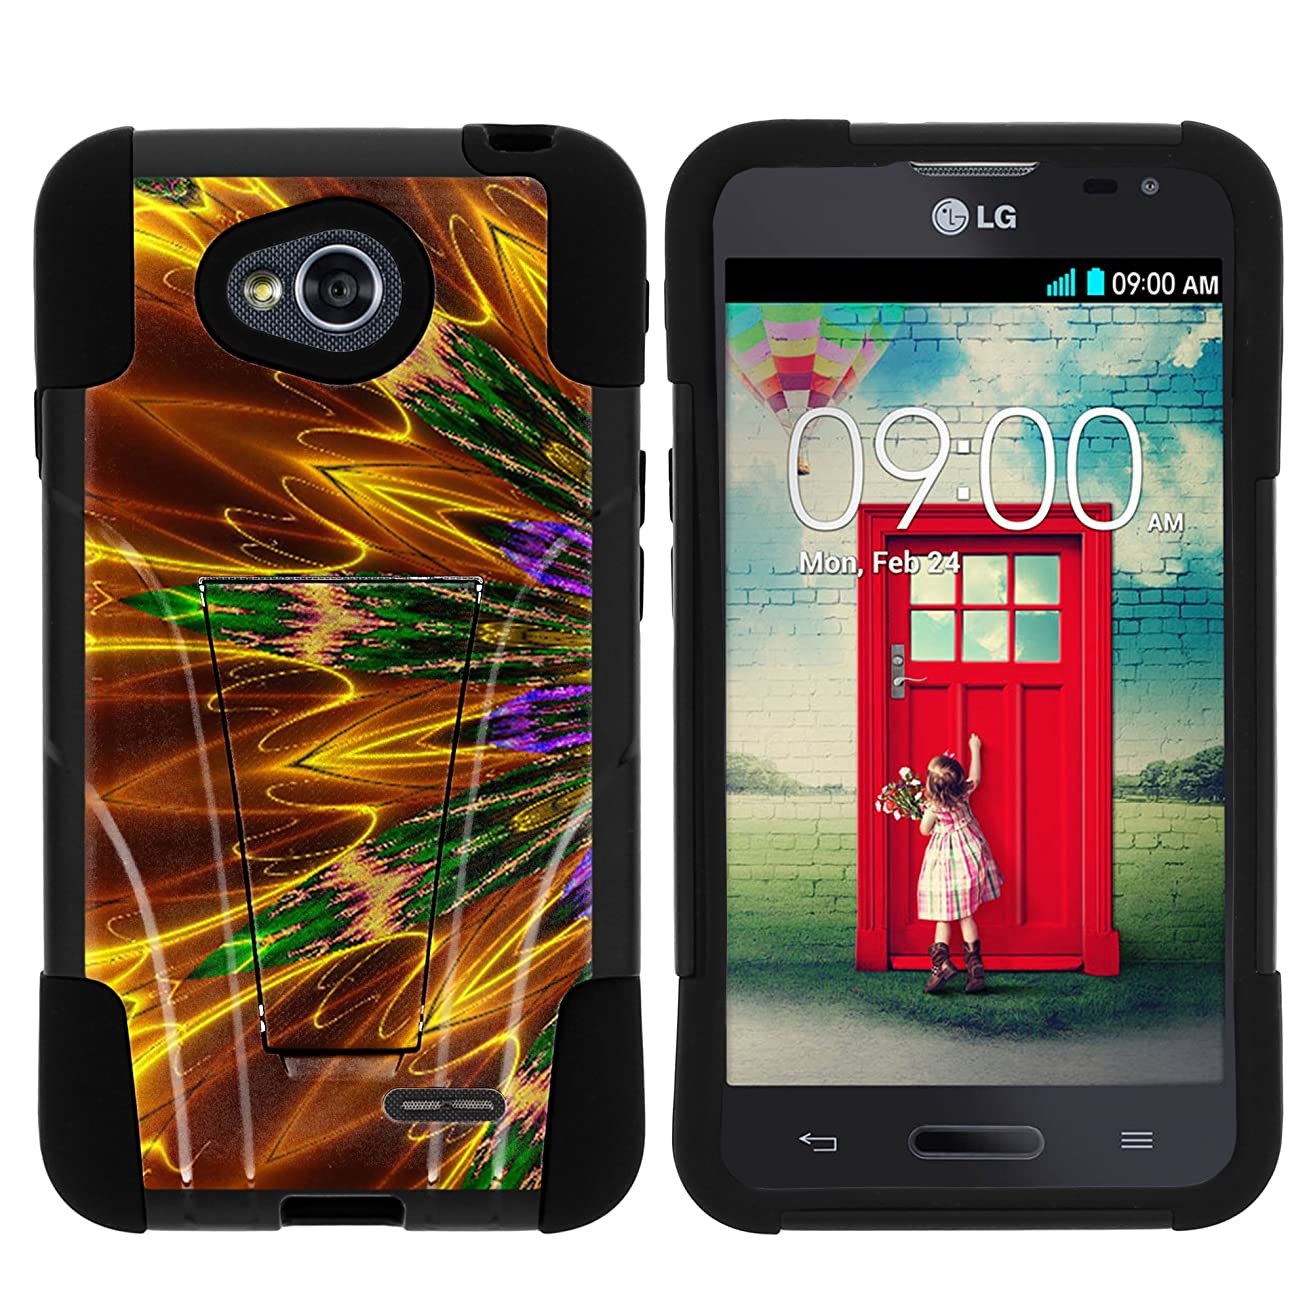 MINITURTLE Case Compatible w/ LG Ultimate 2 Phone Case, Durable Hybrid STRIKE Impact Stand Case w/ Art Designs for LG Optimus L70 MS323, LG Optimus Exceed 2 VS450PP, LG Ultimate 2 L41C from MINITURTLE Kaleidoscopic Phoenix